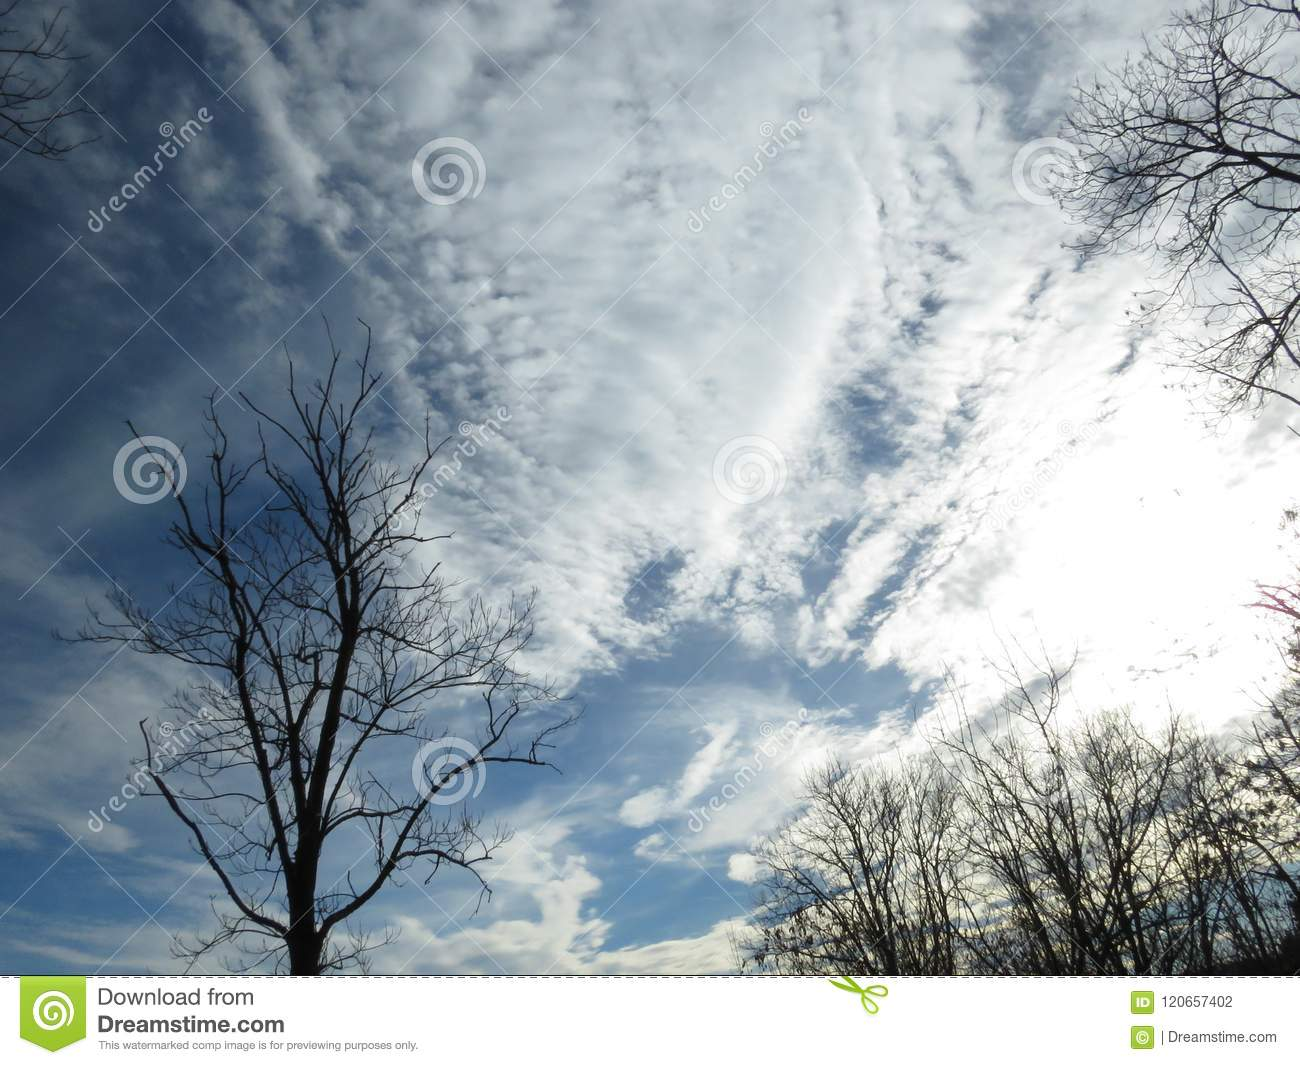 Autumn Winter stormy sky full of white clouds. Weather forecast concept. Oxygen, environment.